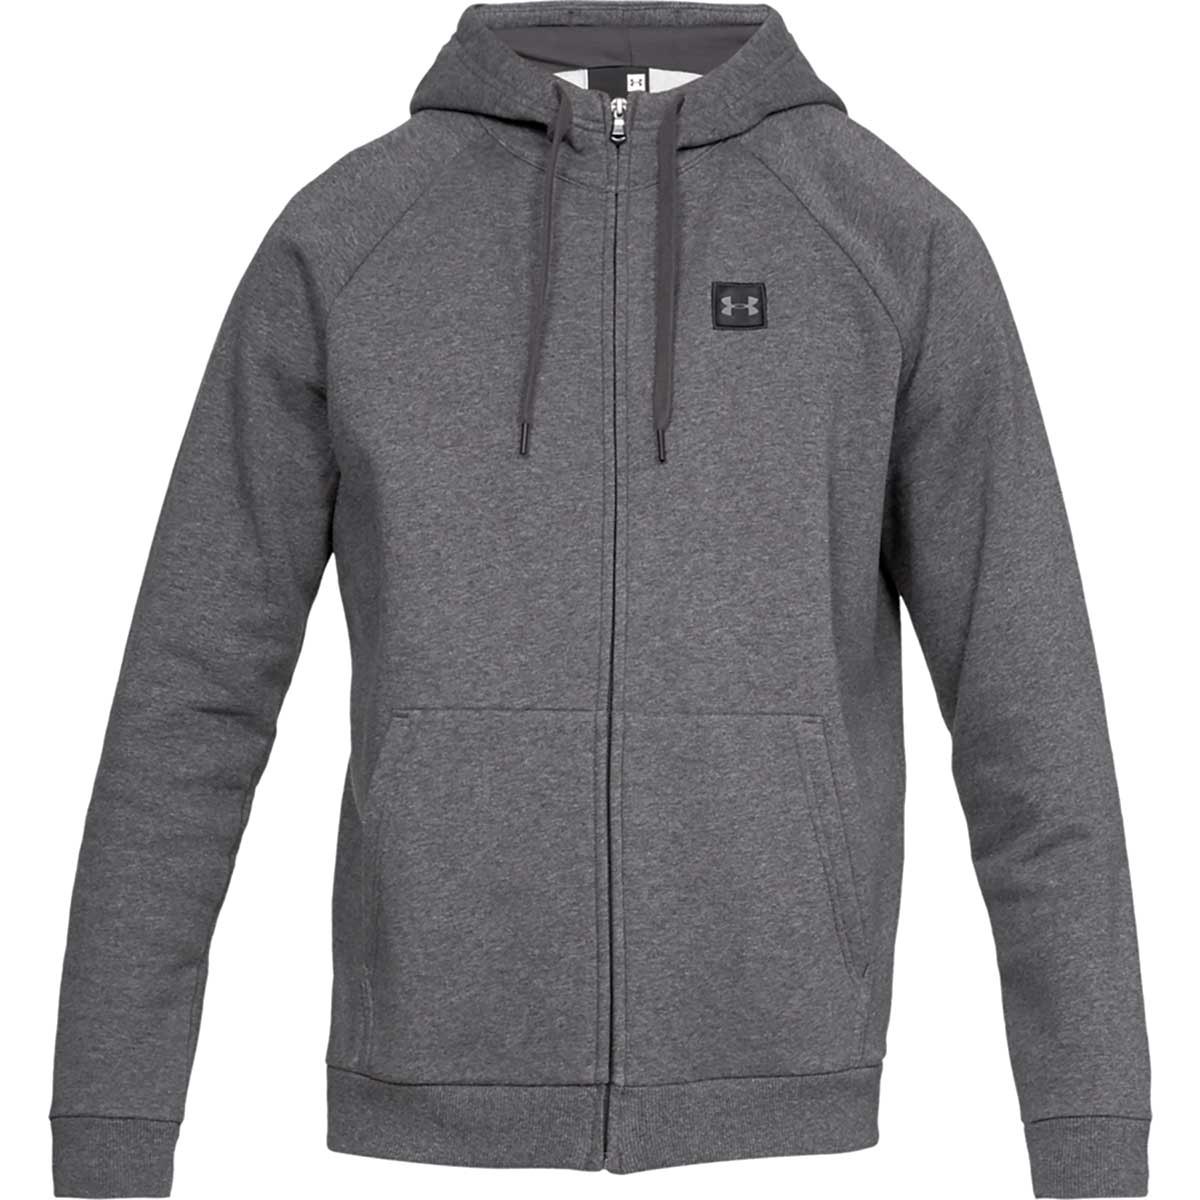 Under Armour Men's Rival Fleece Full-Zip